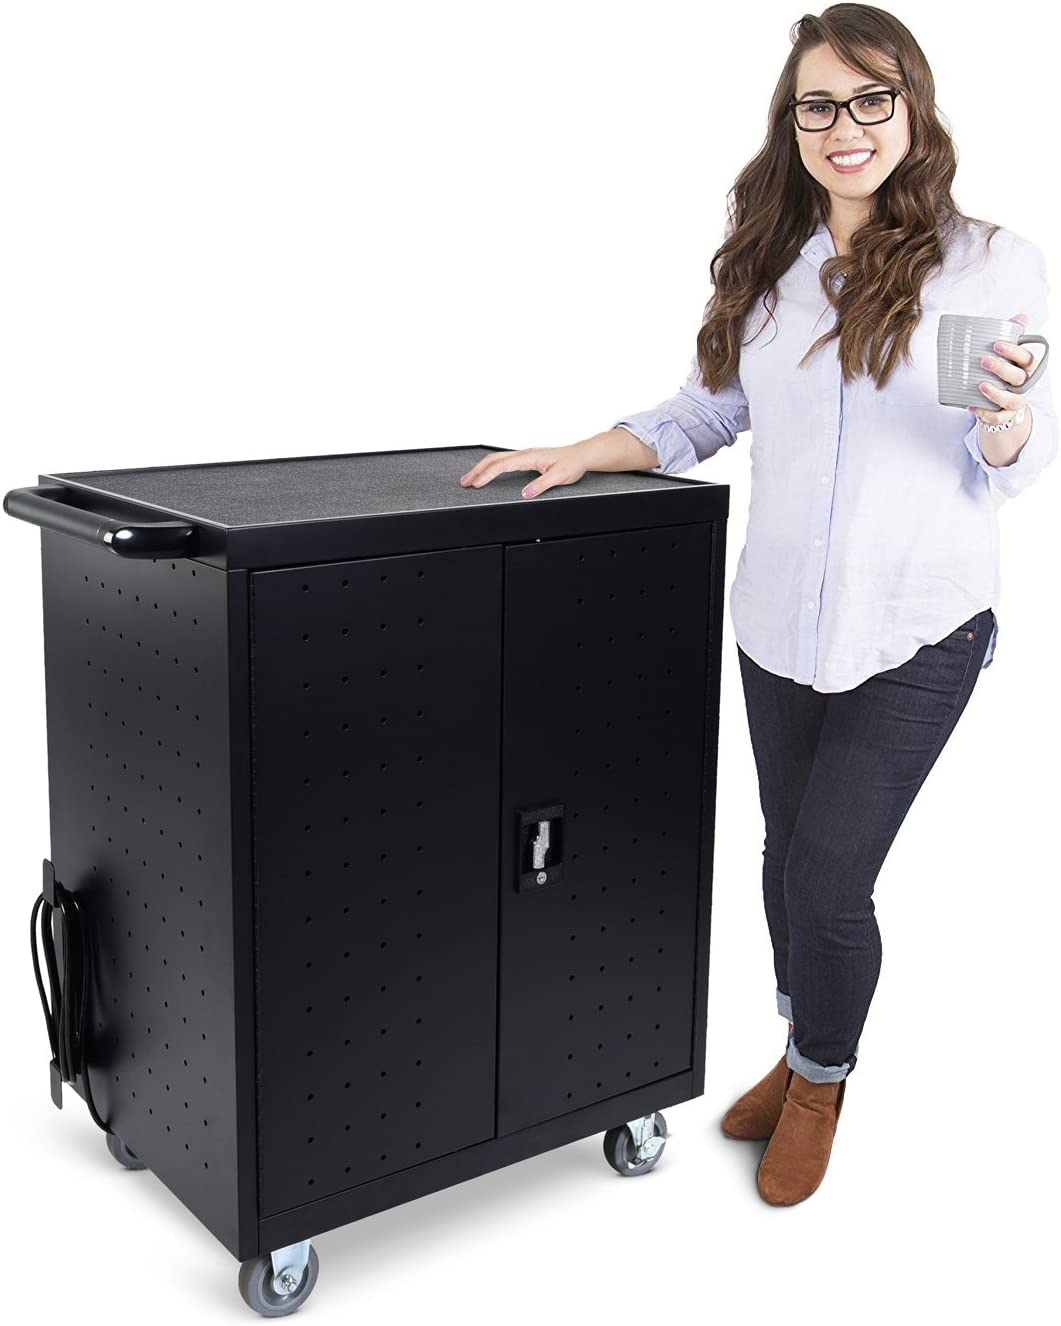 Surge Protection CX Mobile Charging and Storage Cart for Tablets and Laptops Computers with Locking Security Cabinet Front /& Back Access Locking Cabinet